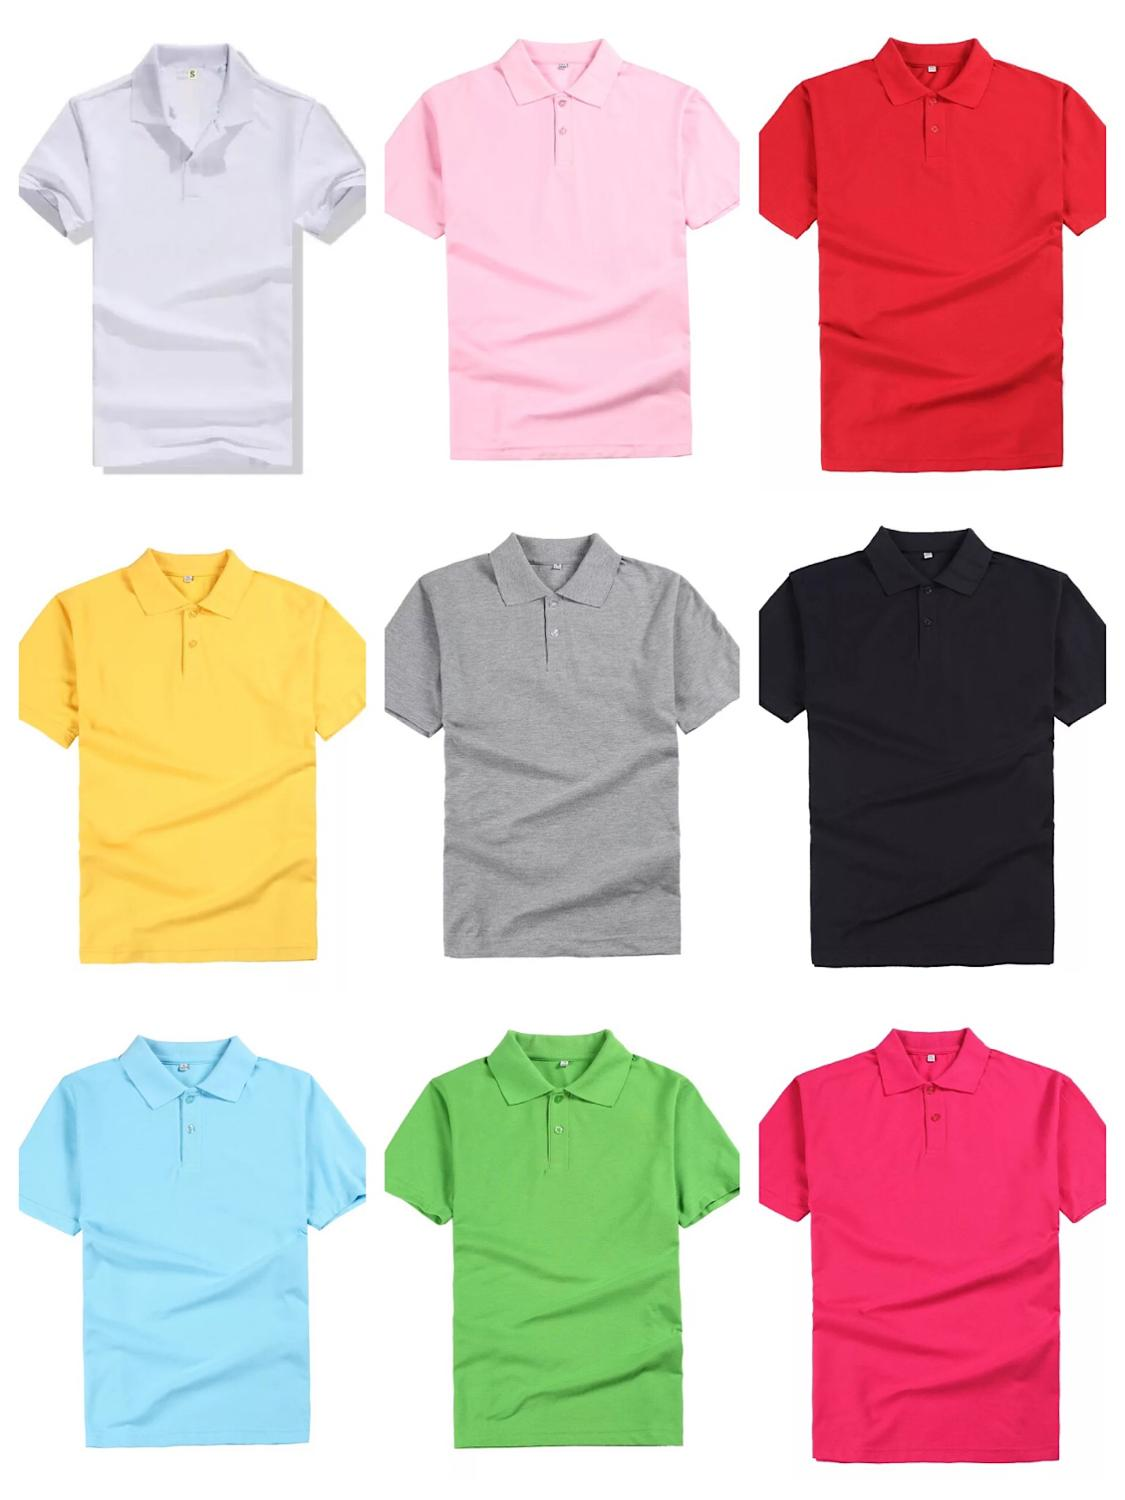 men's and women's   polo   shirts casual color cotton   polo   shirts 12 color   polo   shirts with short sleeves Free custom name logo